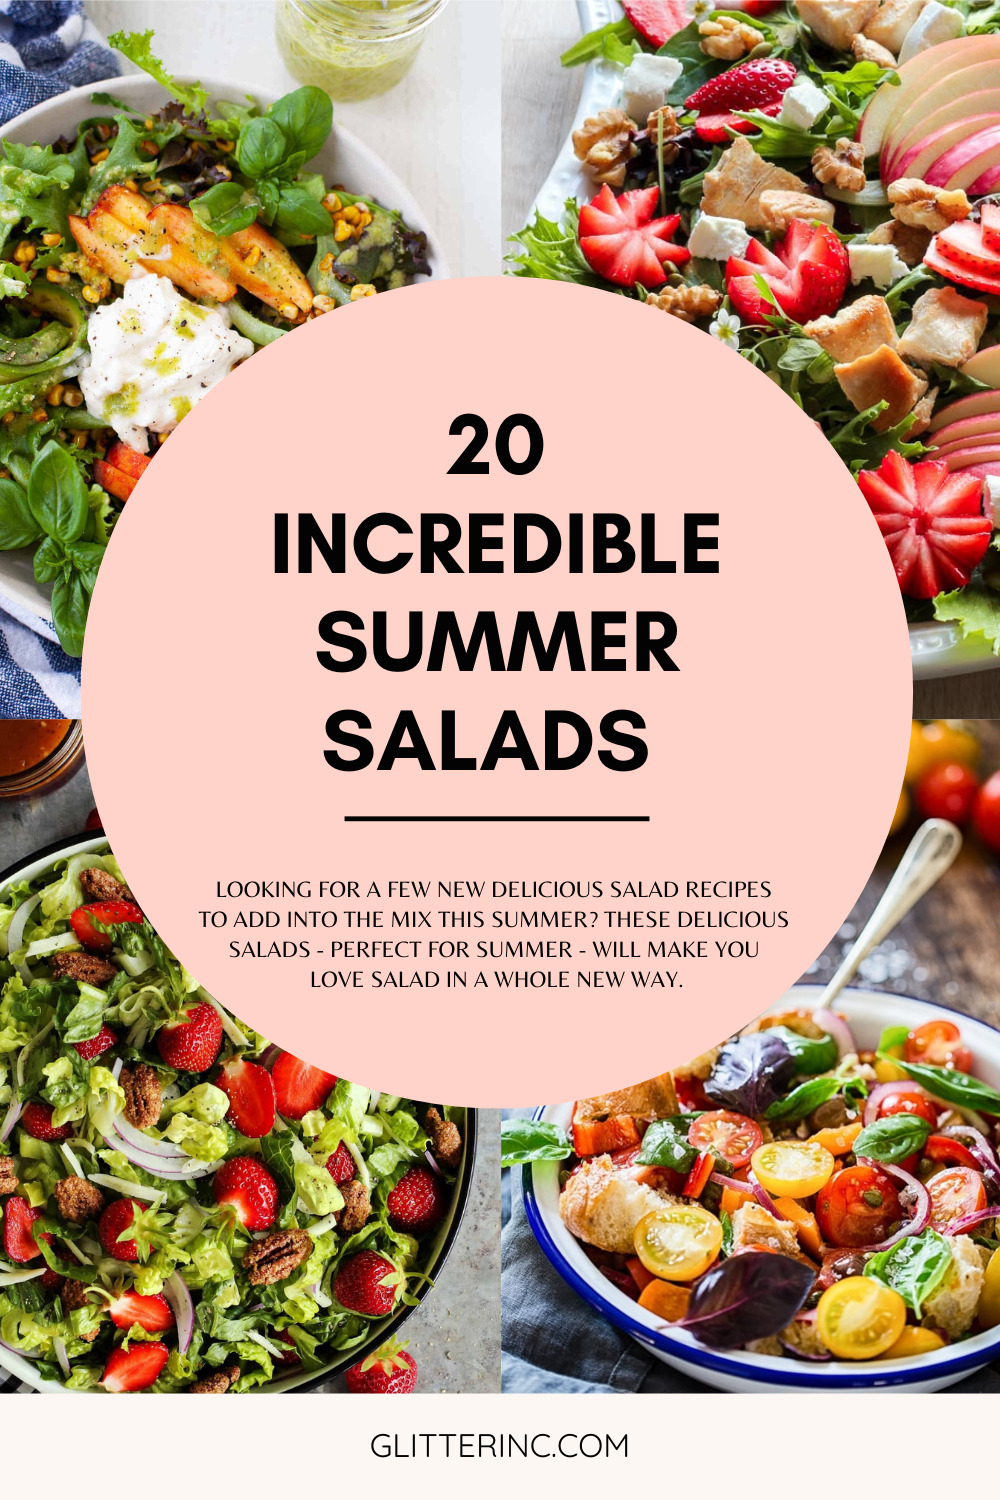 20 Incredible Summer Salad Recipes With Fresh Produce and Homemade Dressing - Salads - GLITTERINC.COM